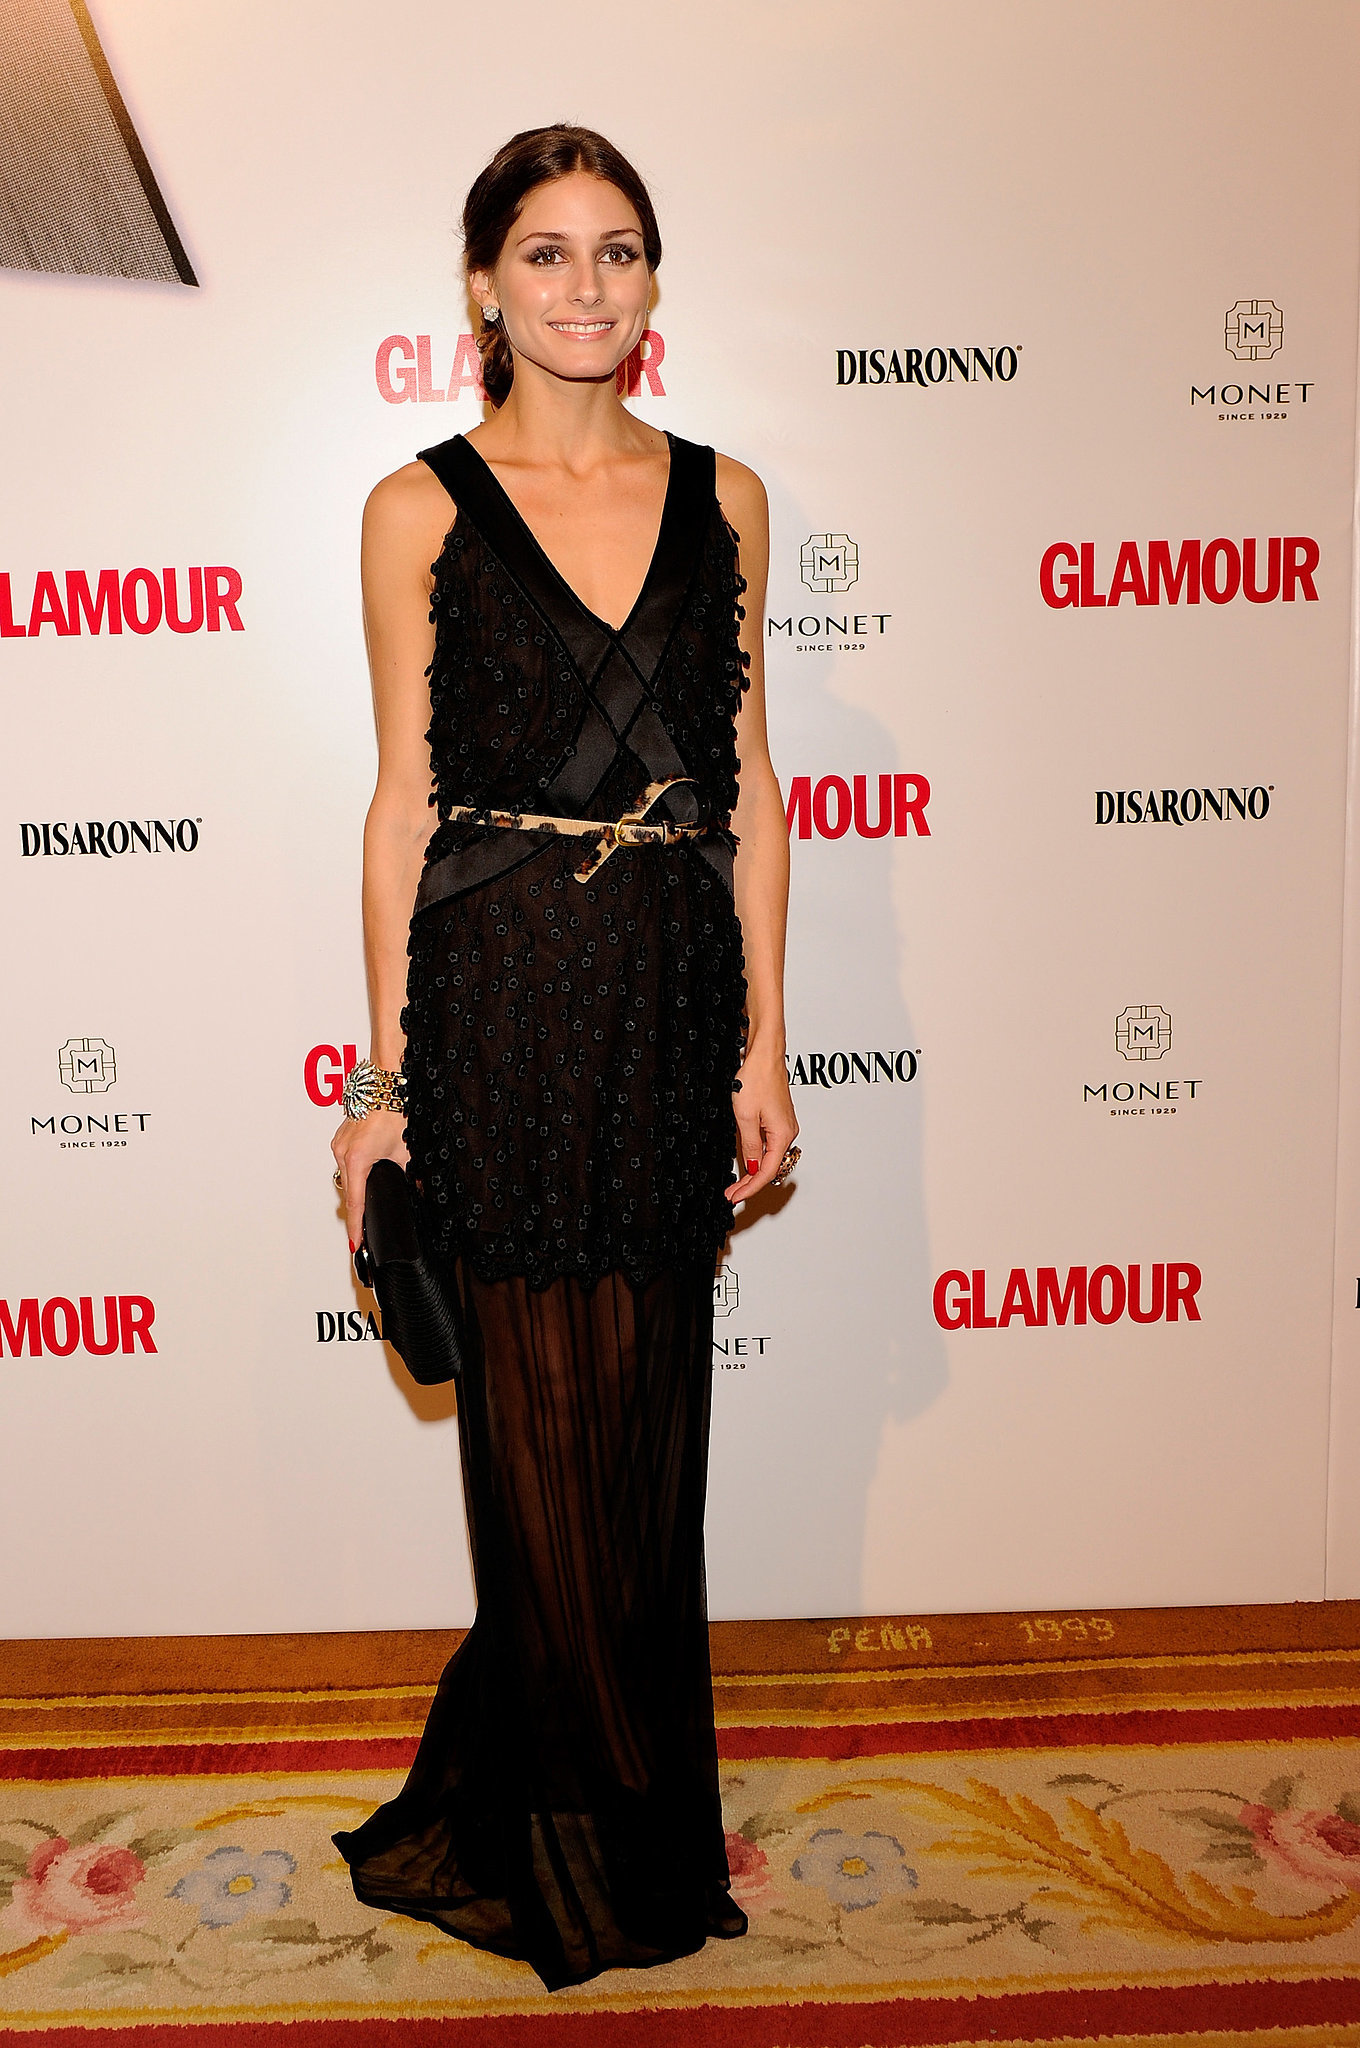 A sexy full-length sheer gown at the Top Glamour Awards in 2010.